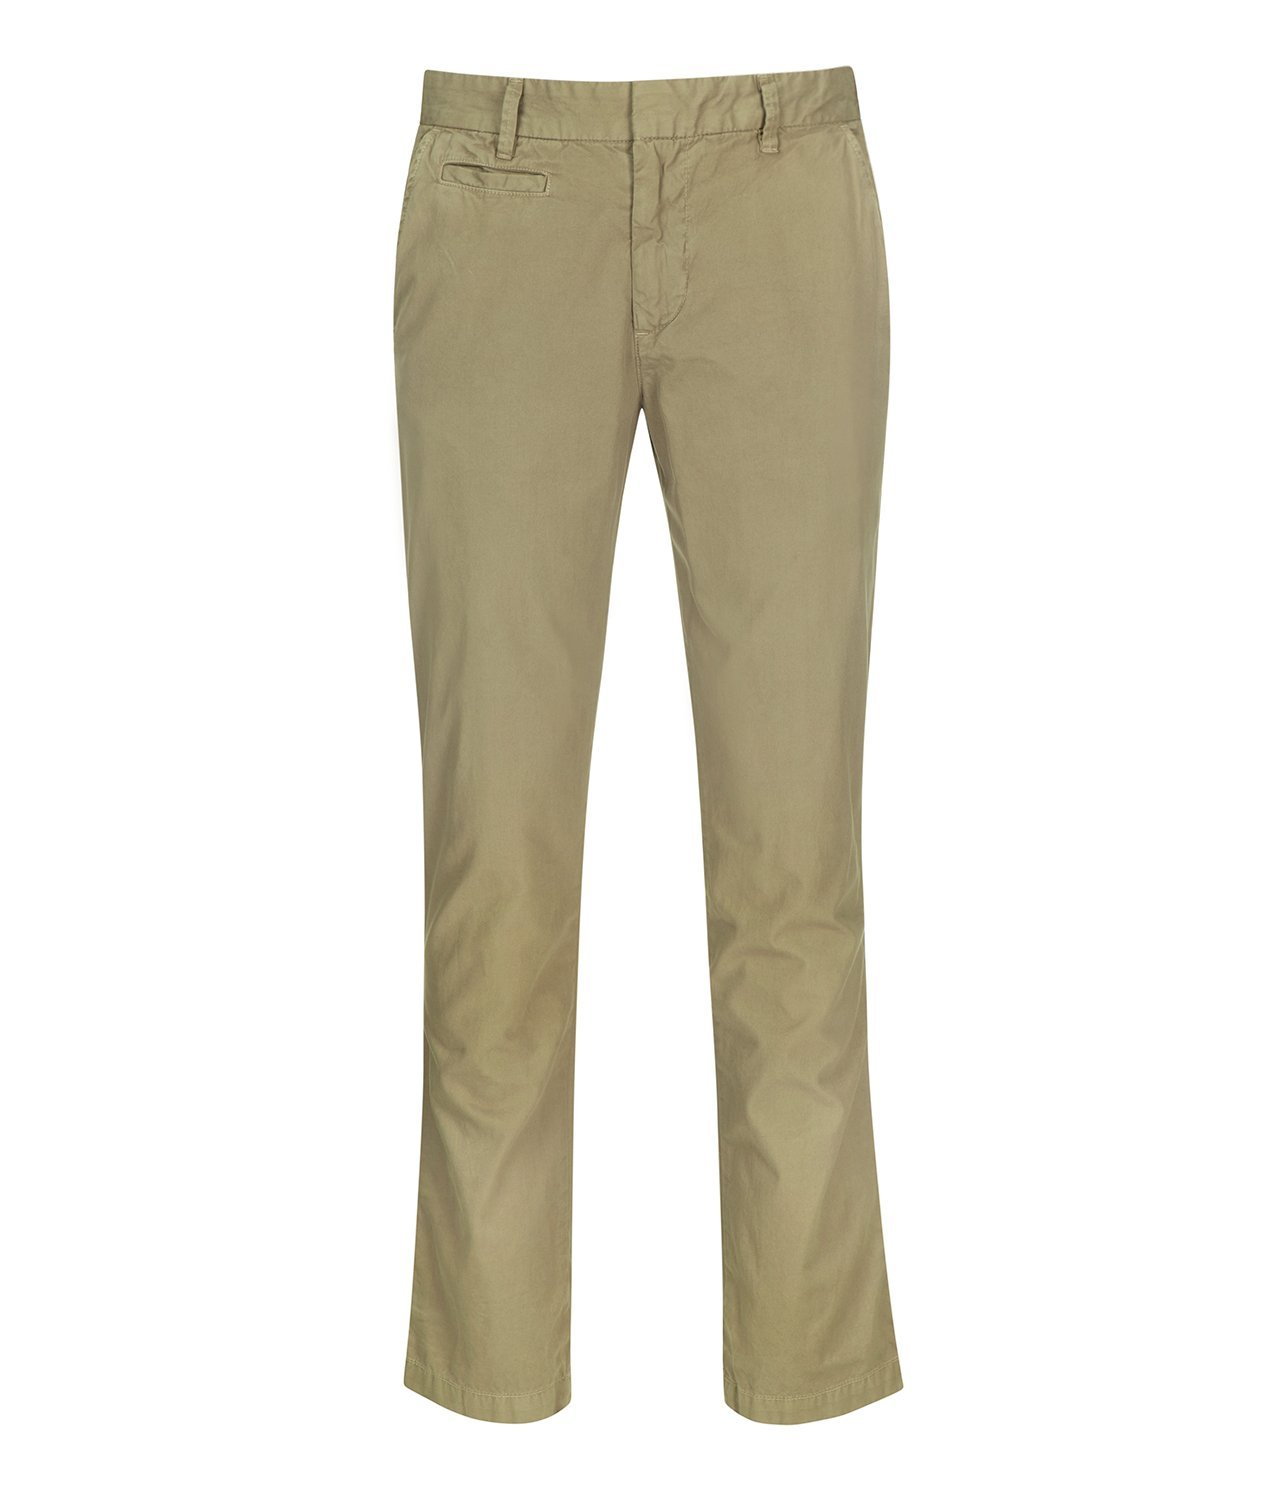 Save Khaki Men's Slim Trouser SK933-US Dust Khaki SZ 29